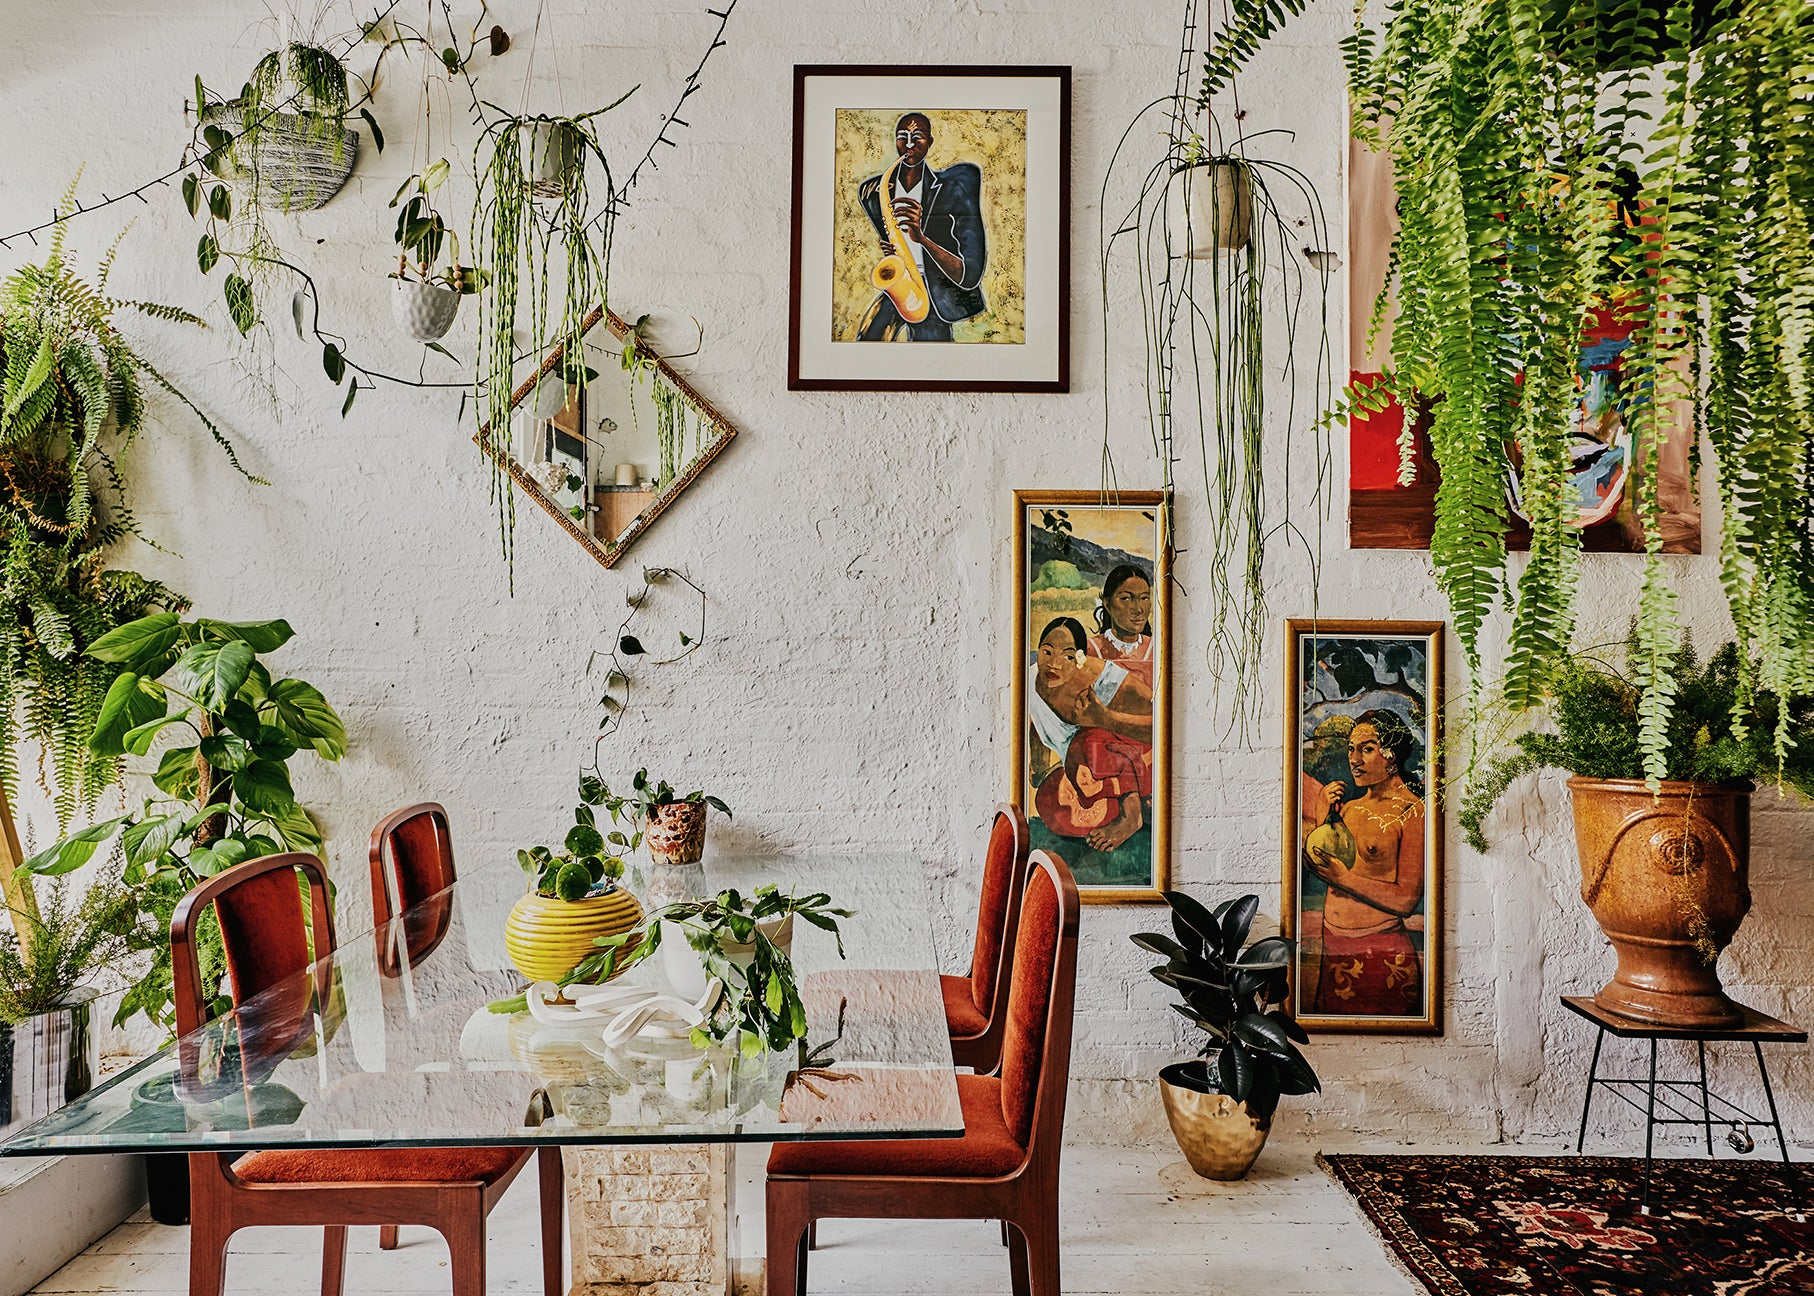 Dining room with plants and art